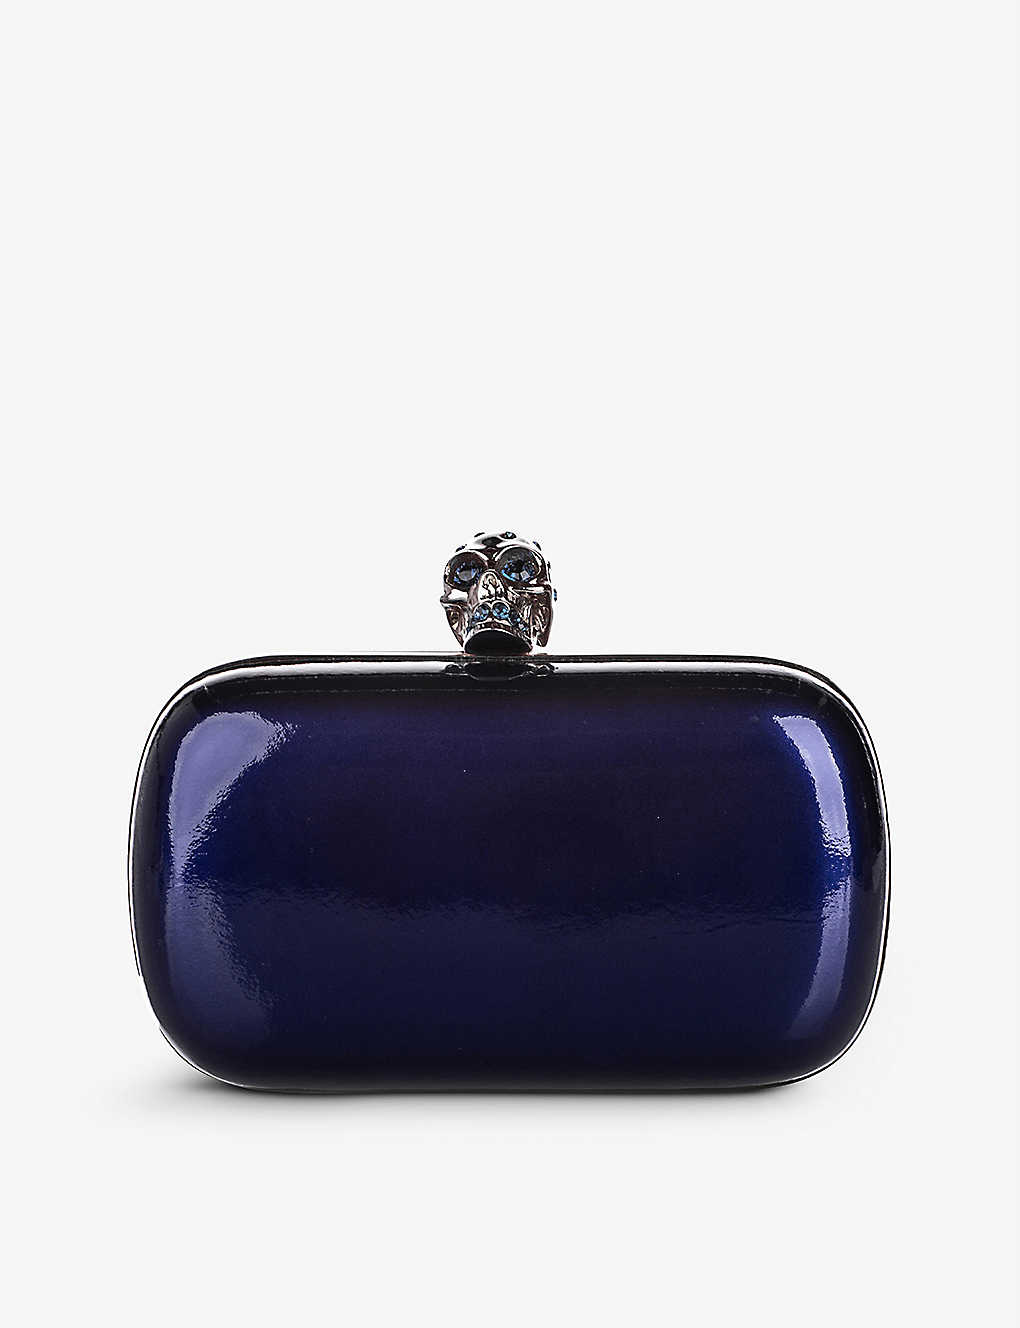 RESELLFRIDGES: Pre-loved Alexander McQueen patent-leather clutch bag